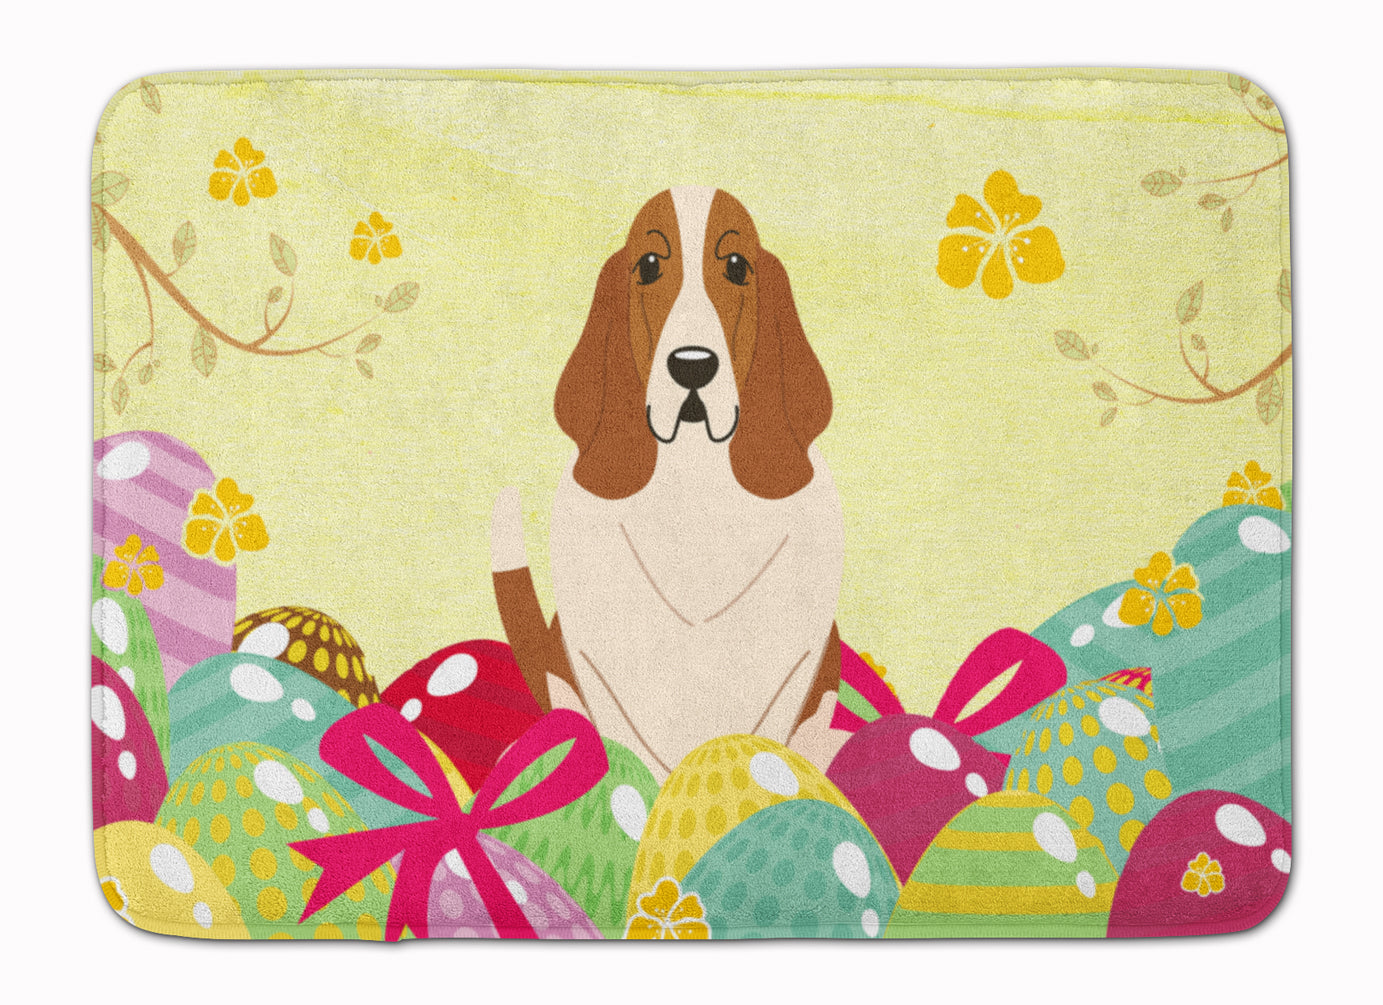 Easter Eggs Basset Hound Machine Washable Memory Foam Mat BB6021RUG by Caroline's Treasures